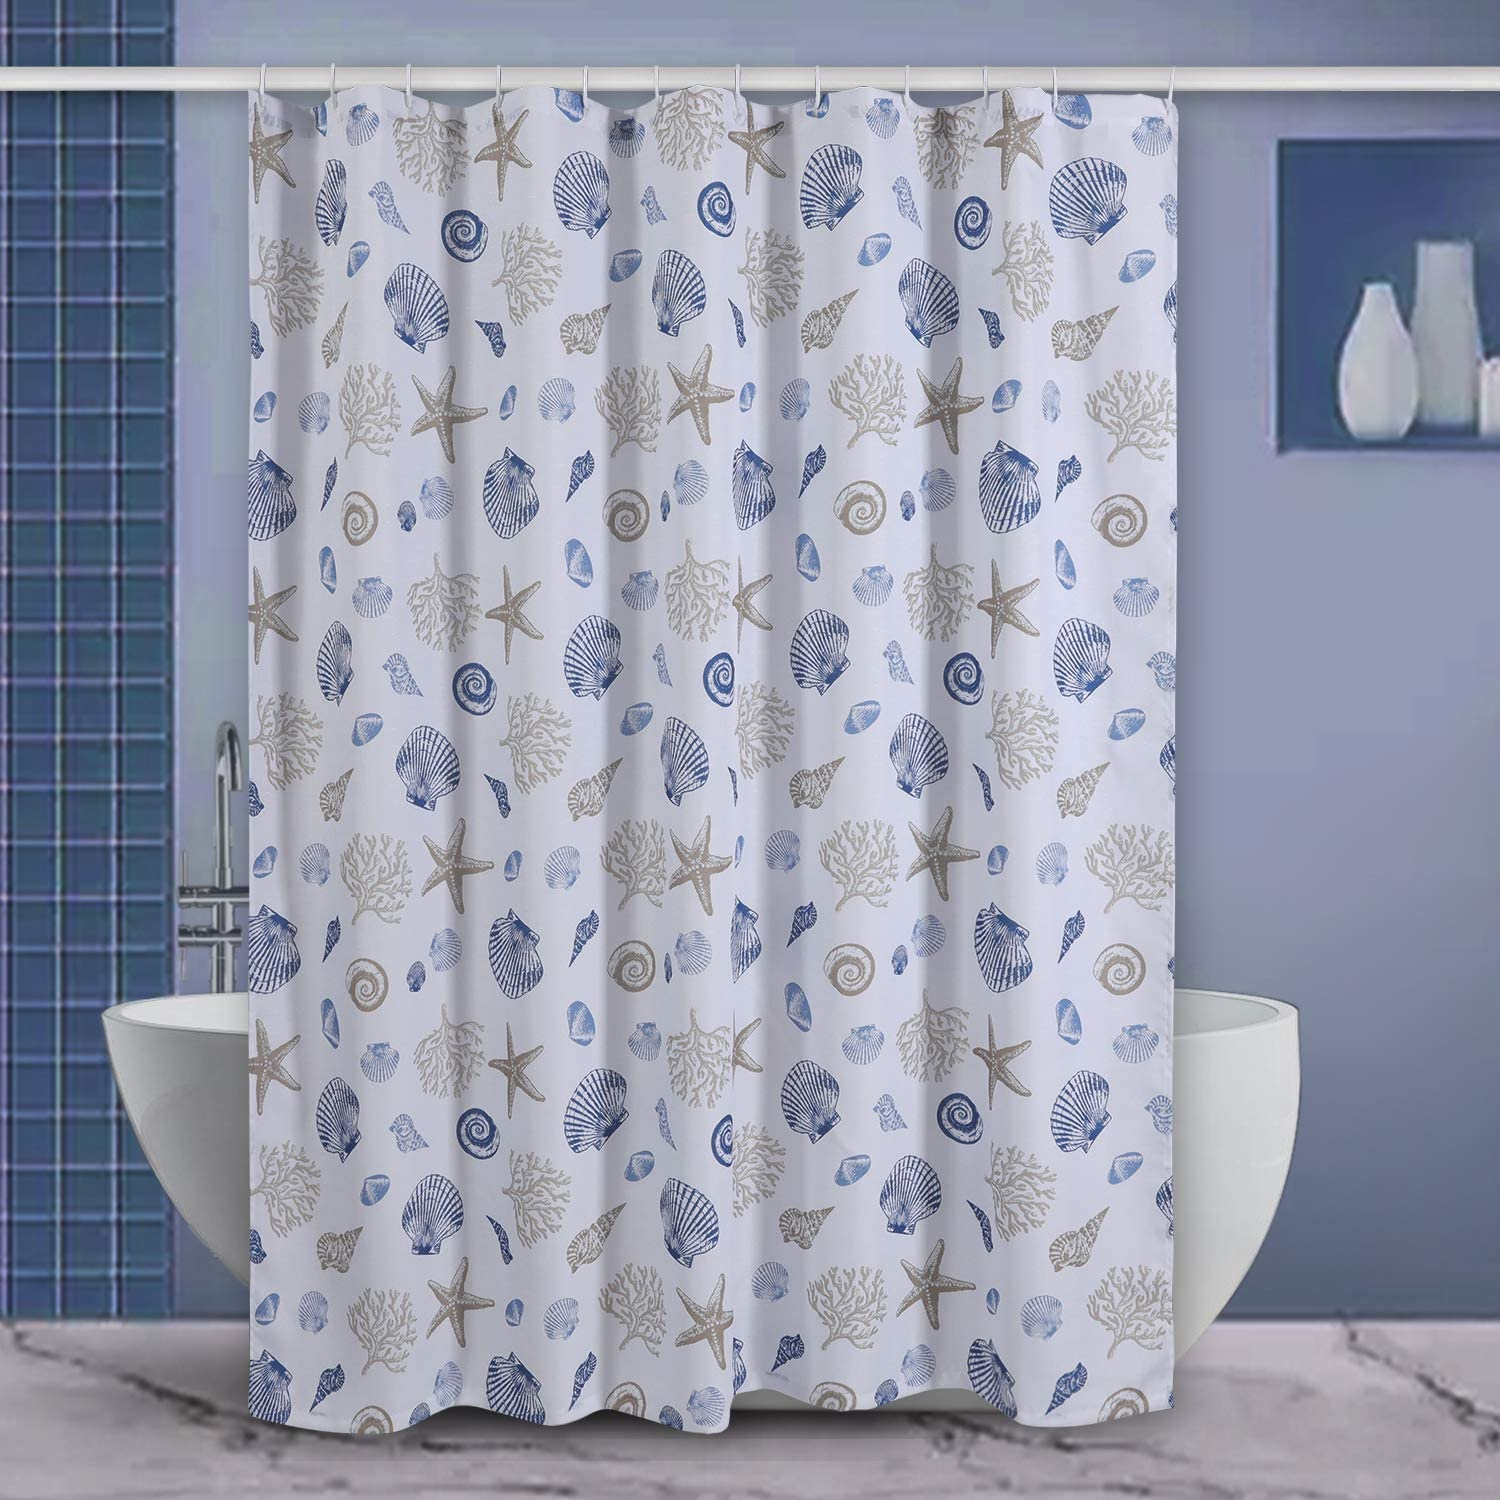 "Shower Curtain, Starfish Shower Curtain Bathroom Decorative Curtains for Hotel Spa, 72"" x 72"""